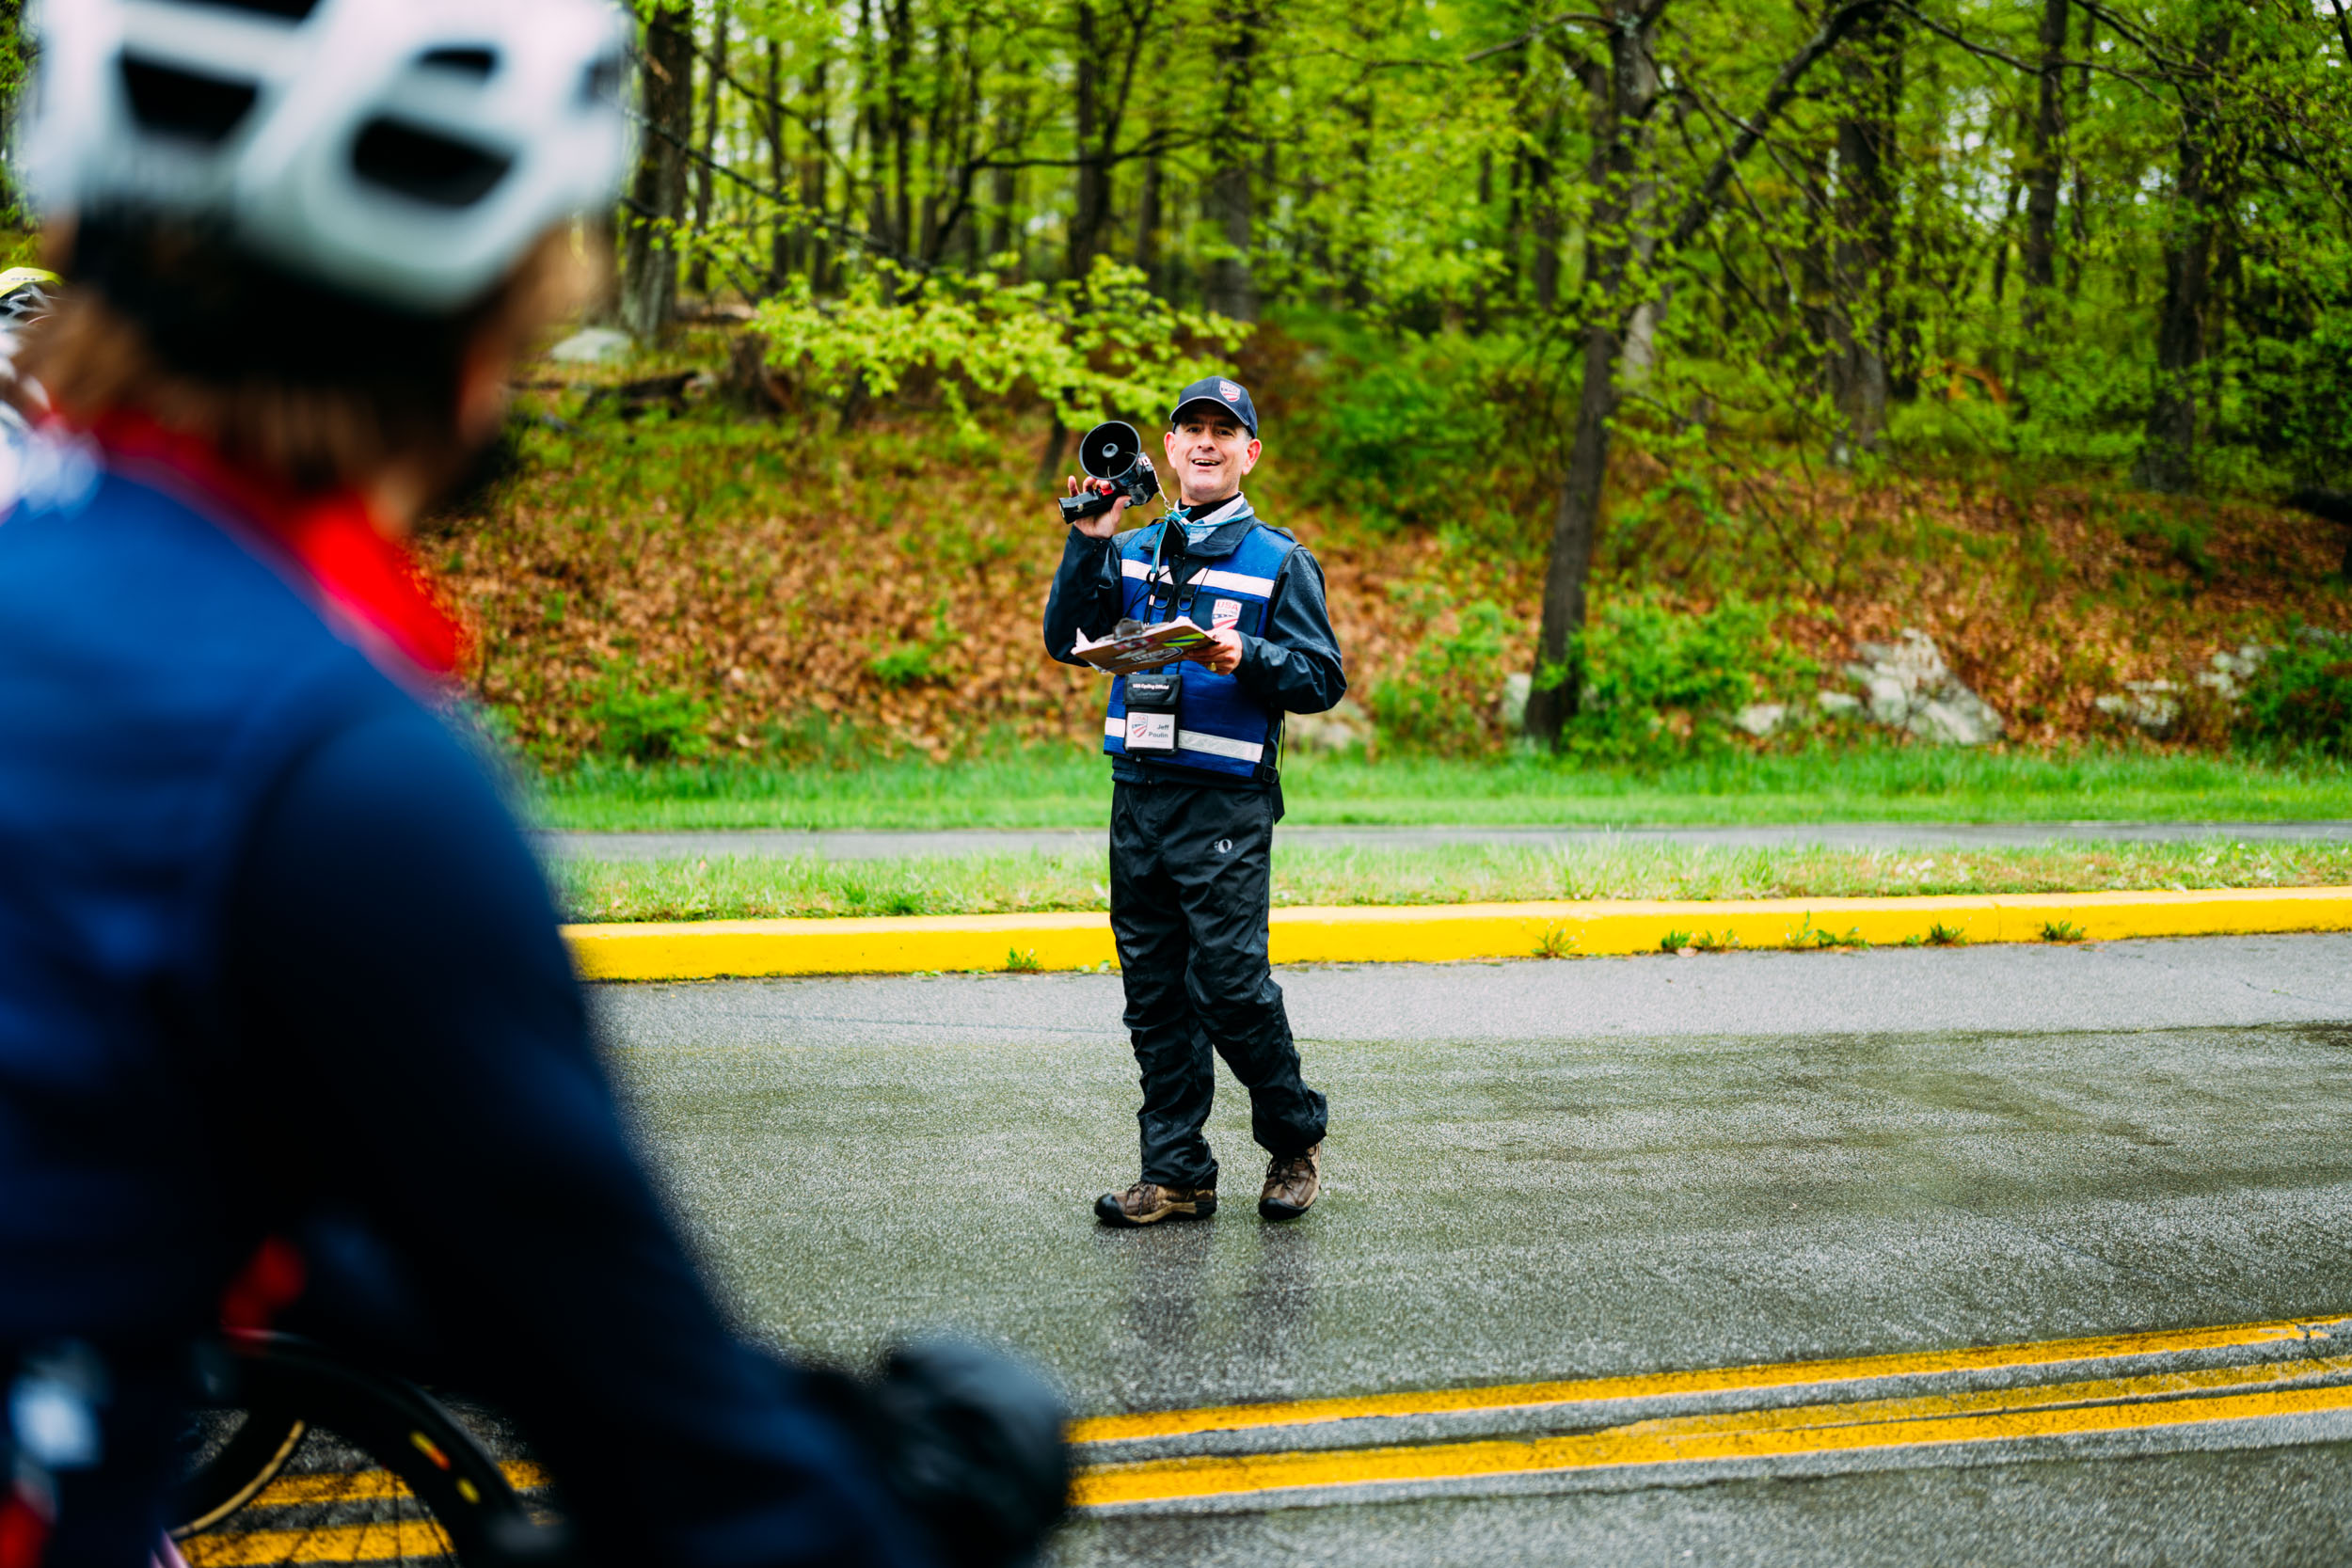 NYSBRA President and USAC Official Jeff Poulin, via our Bear Mountain Classic 2018 Race Report